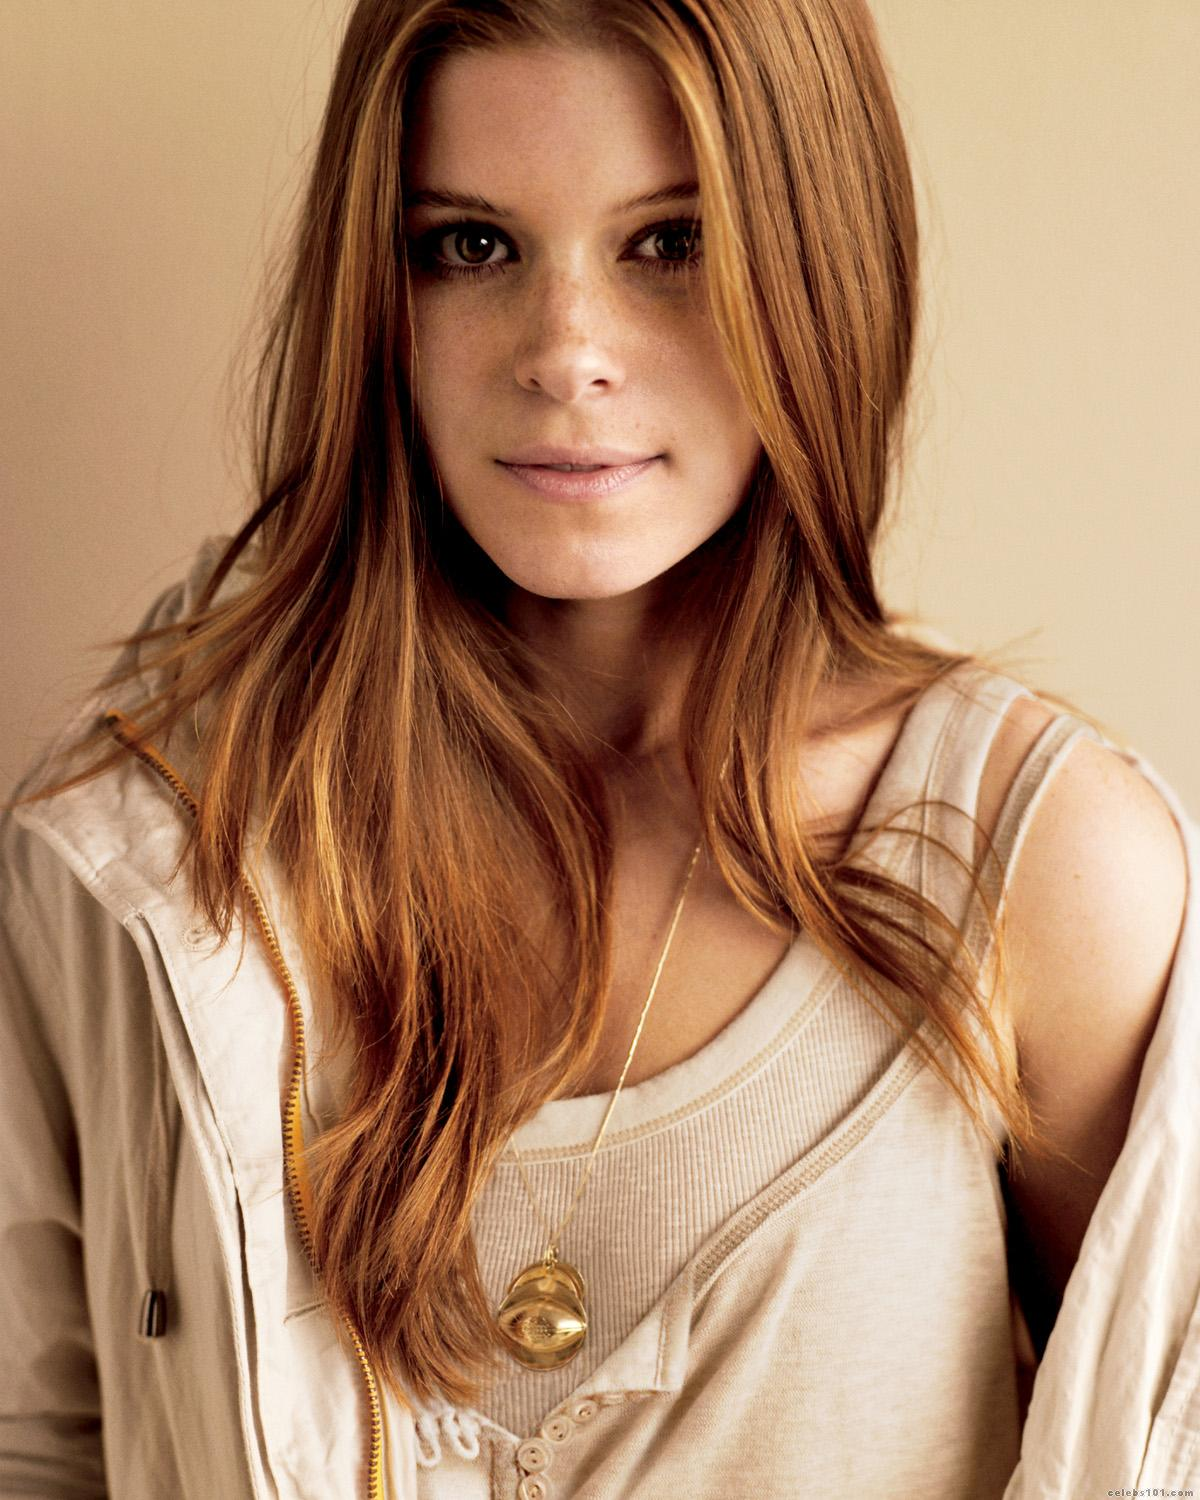 So here is Kate Mara